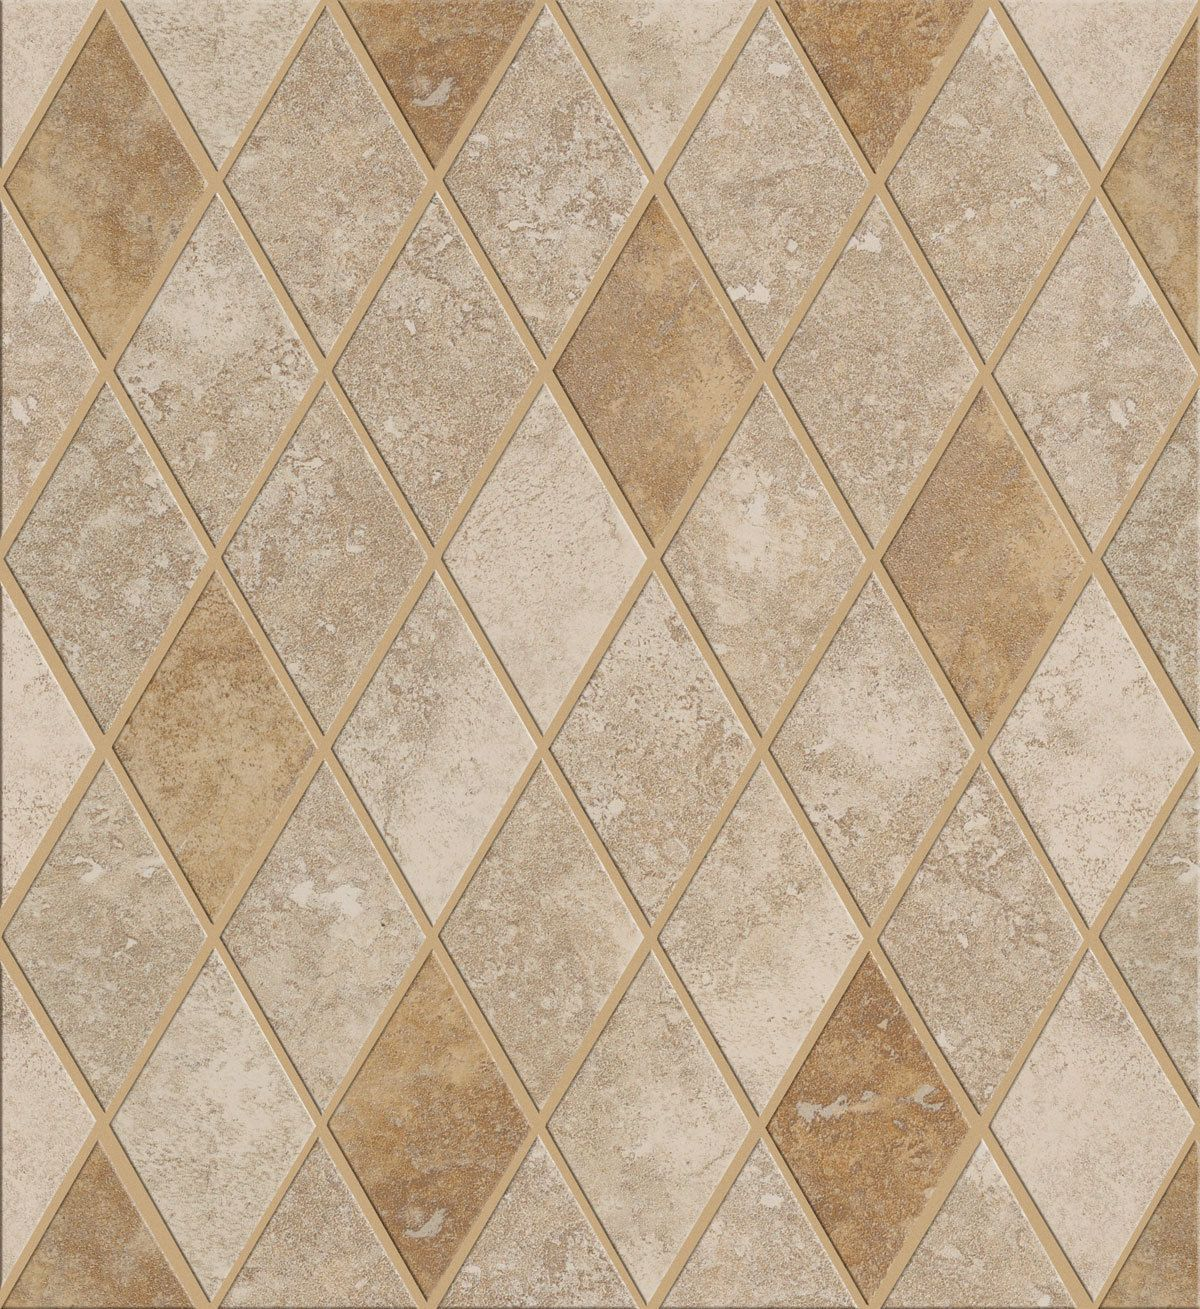 - Rhomboid Backsplash Flooring, Rhomboid Tile, Tiles